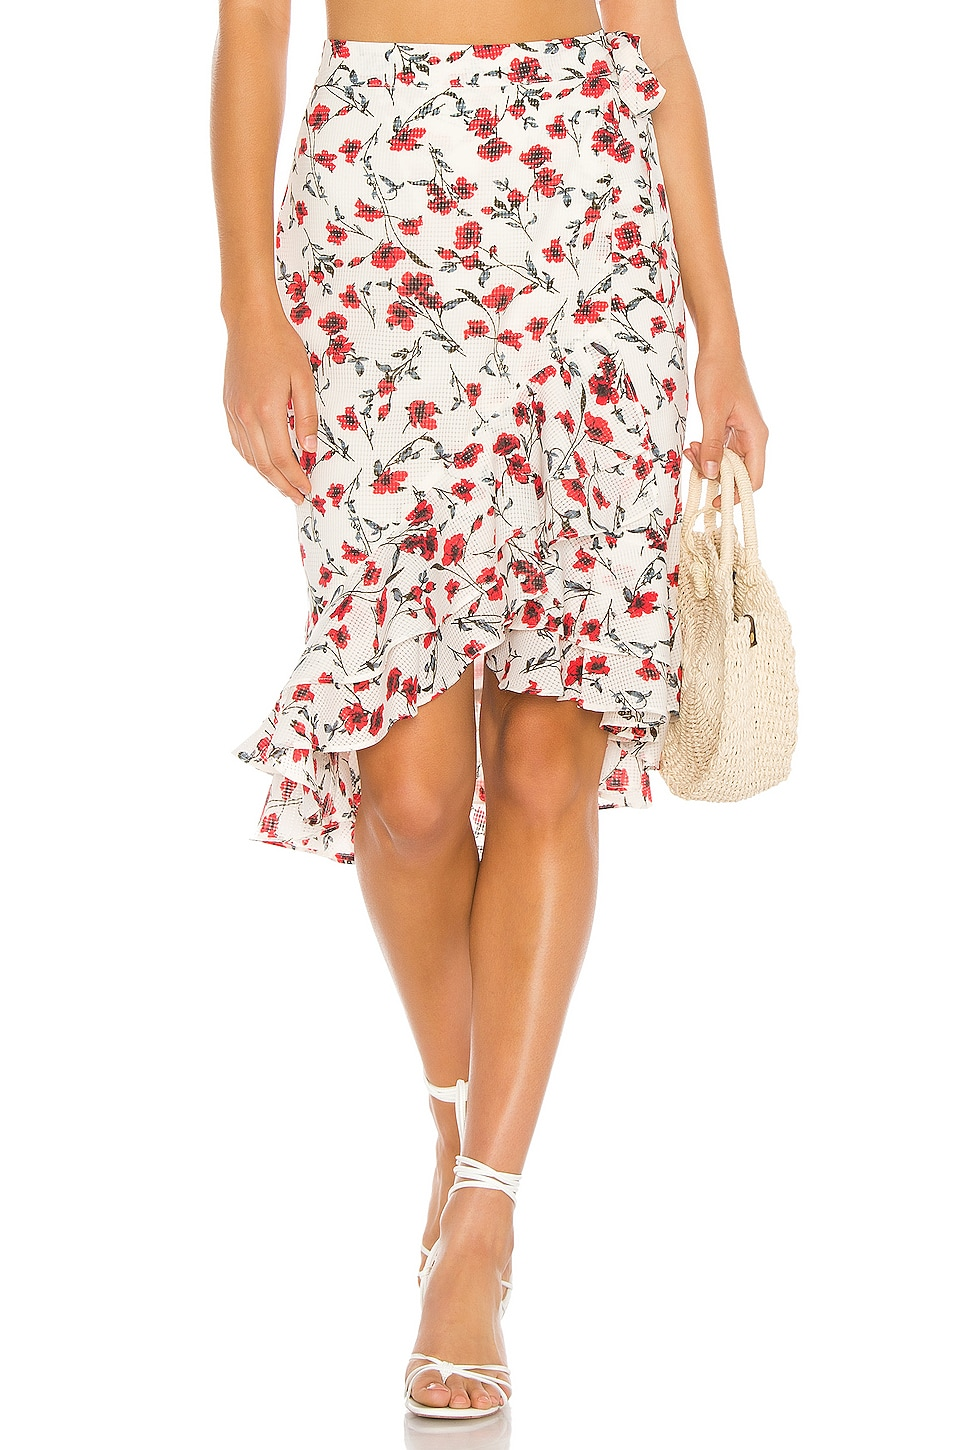 Tularosa Veronica Skirt in Red Dolly Floral